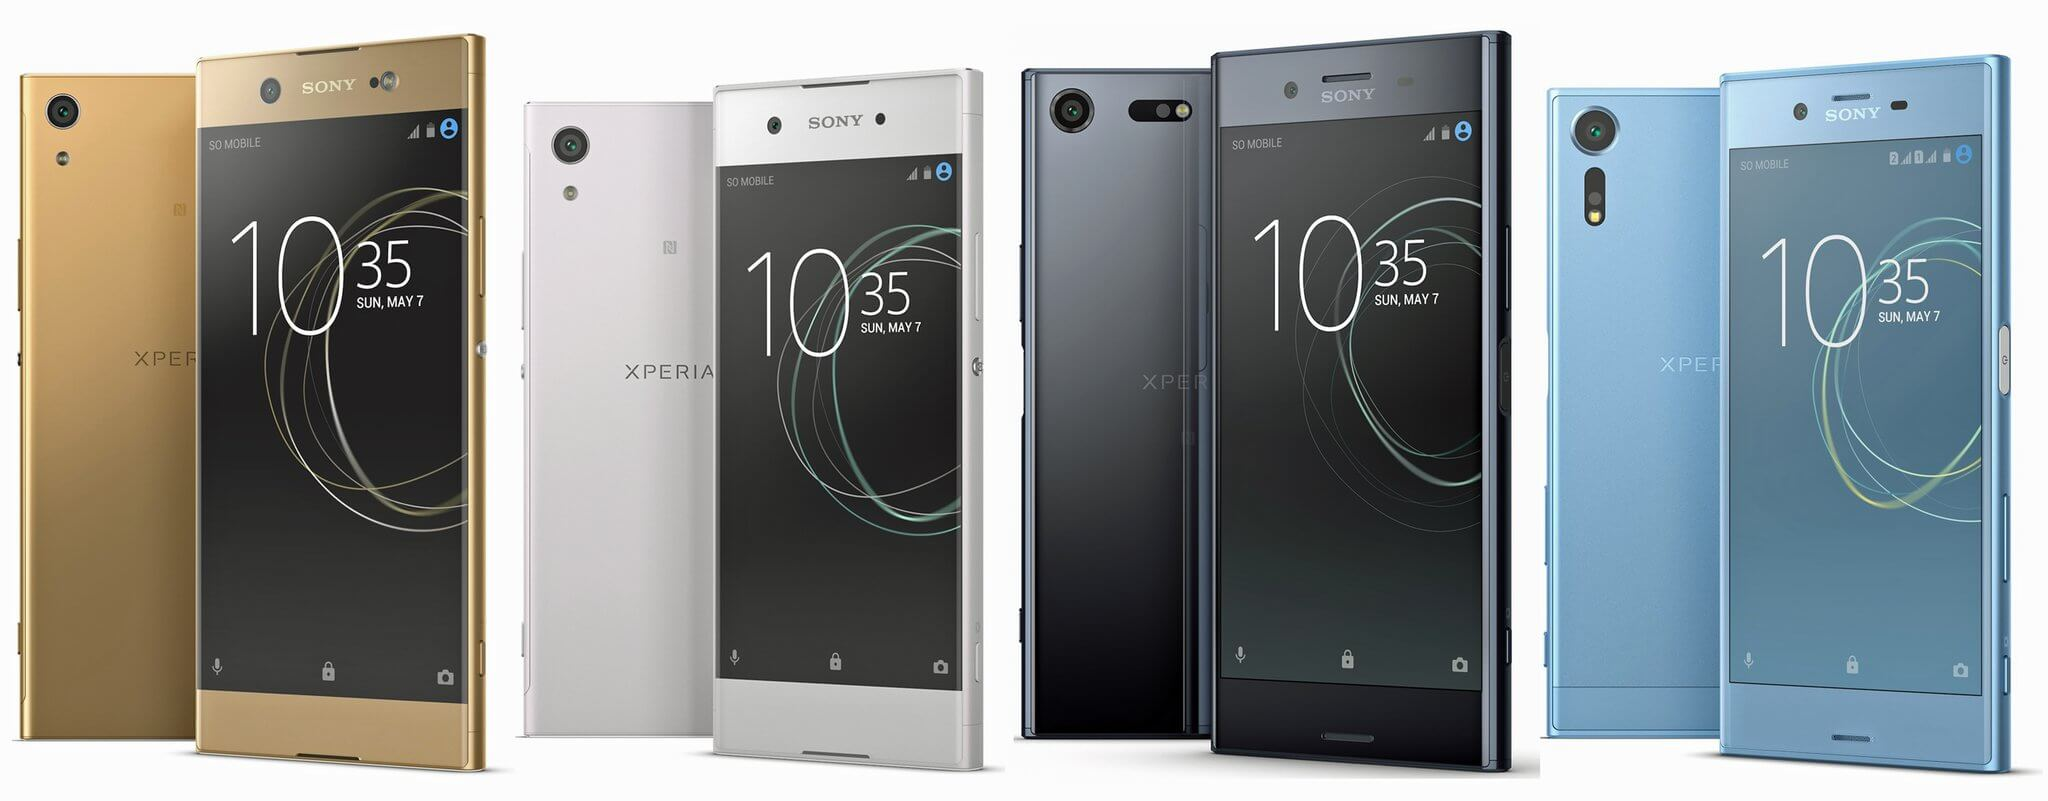 should you buy sony xperia xz premium review android. Black Bedroom Furniture Sets. Home Design Ideas